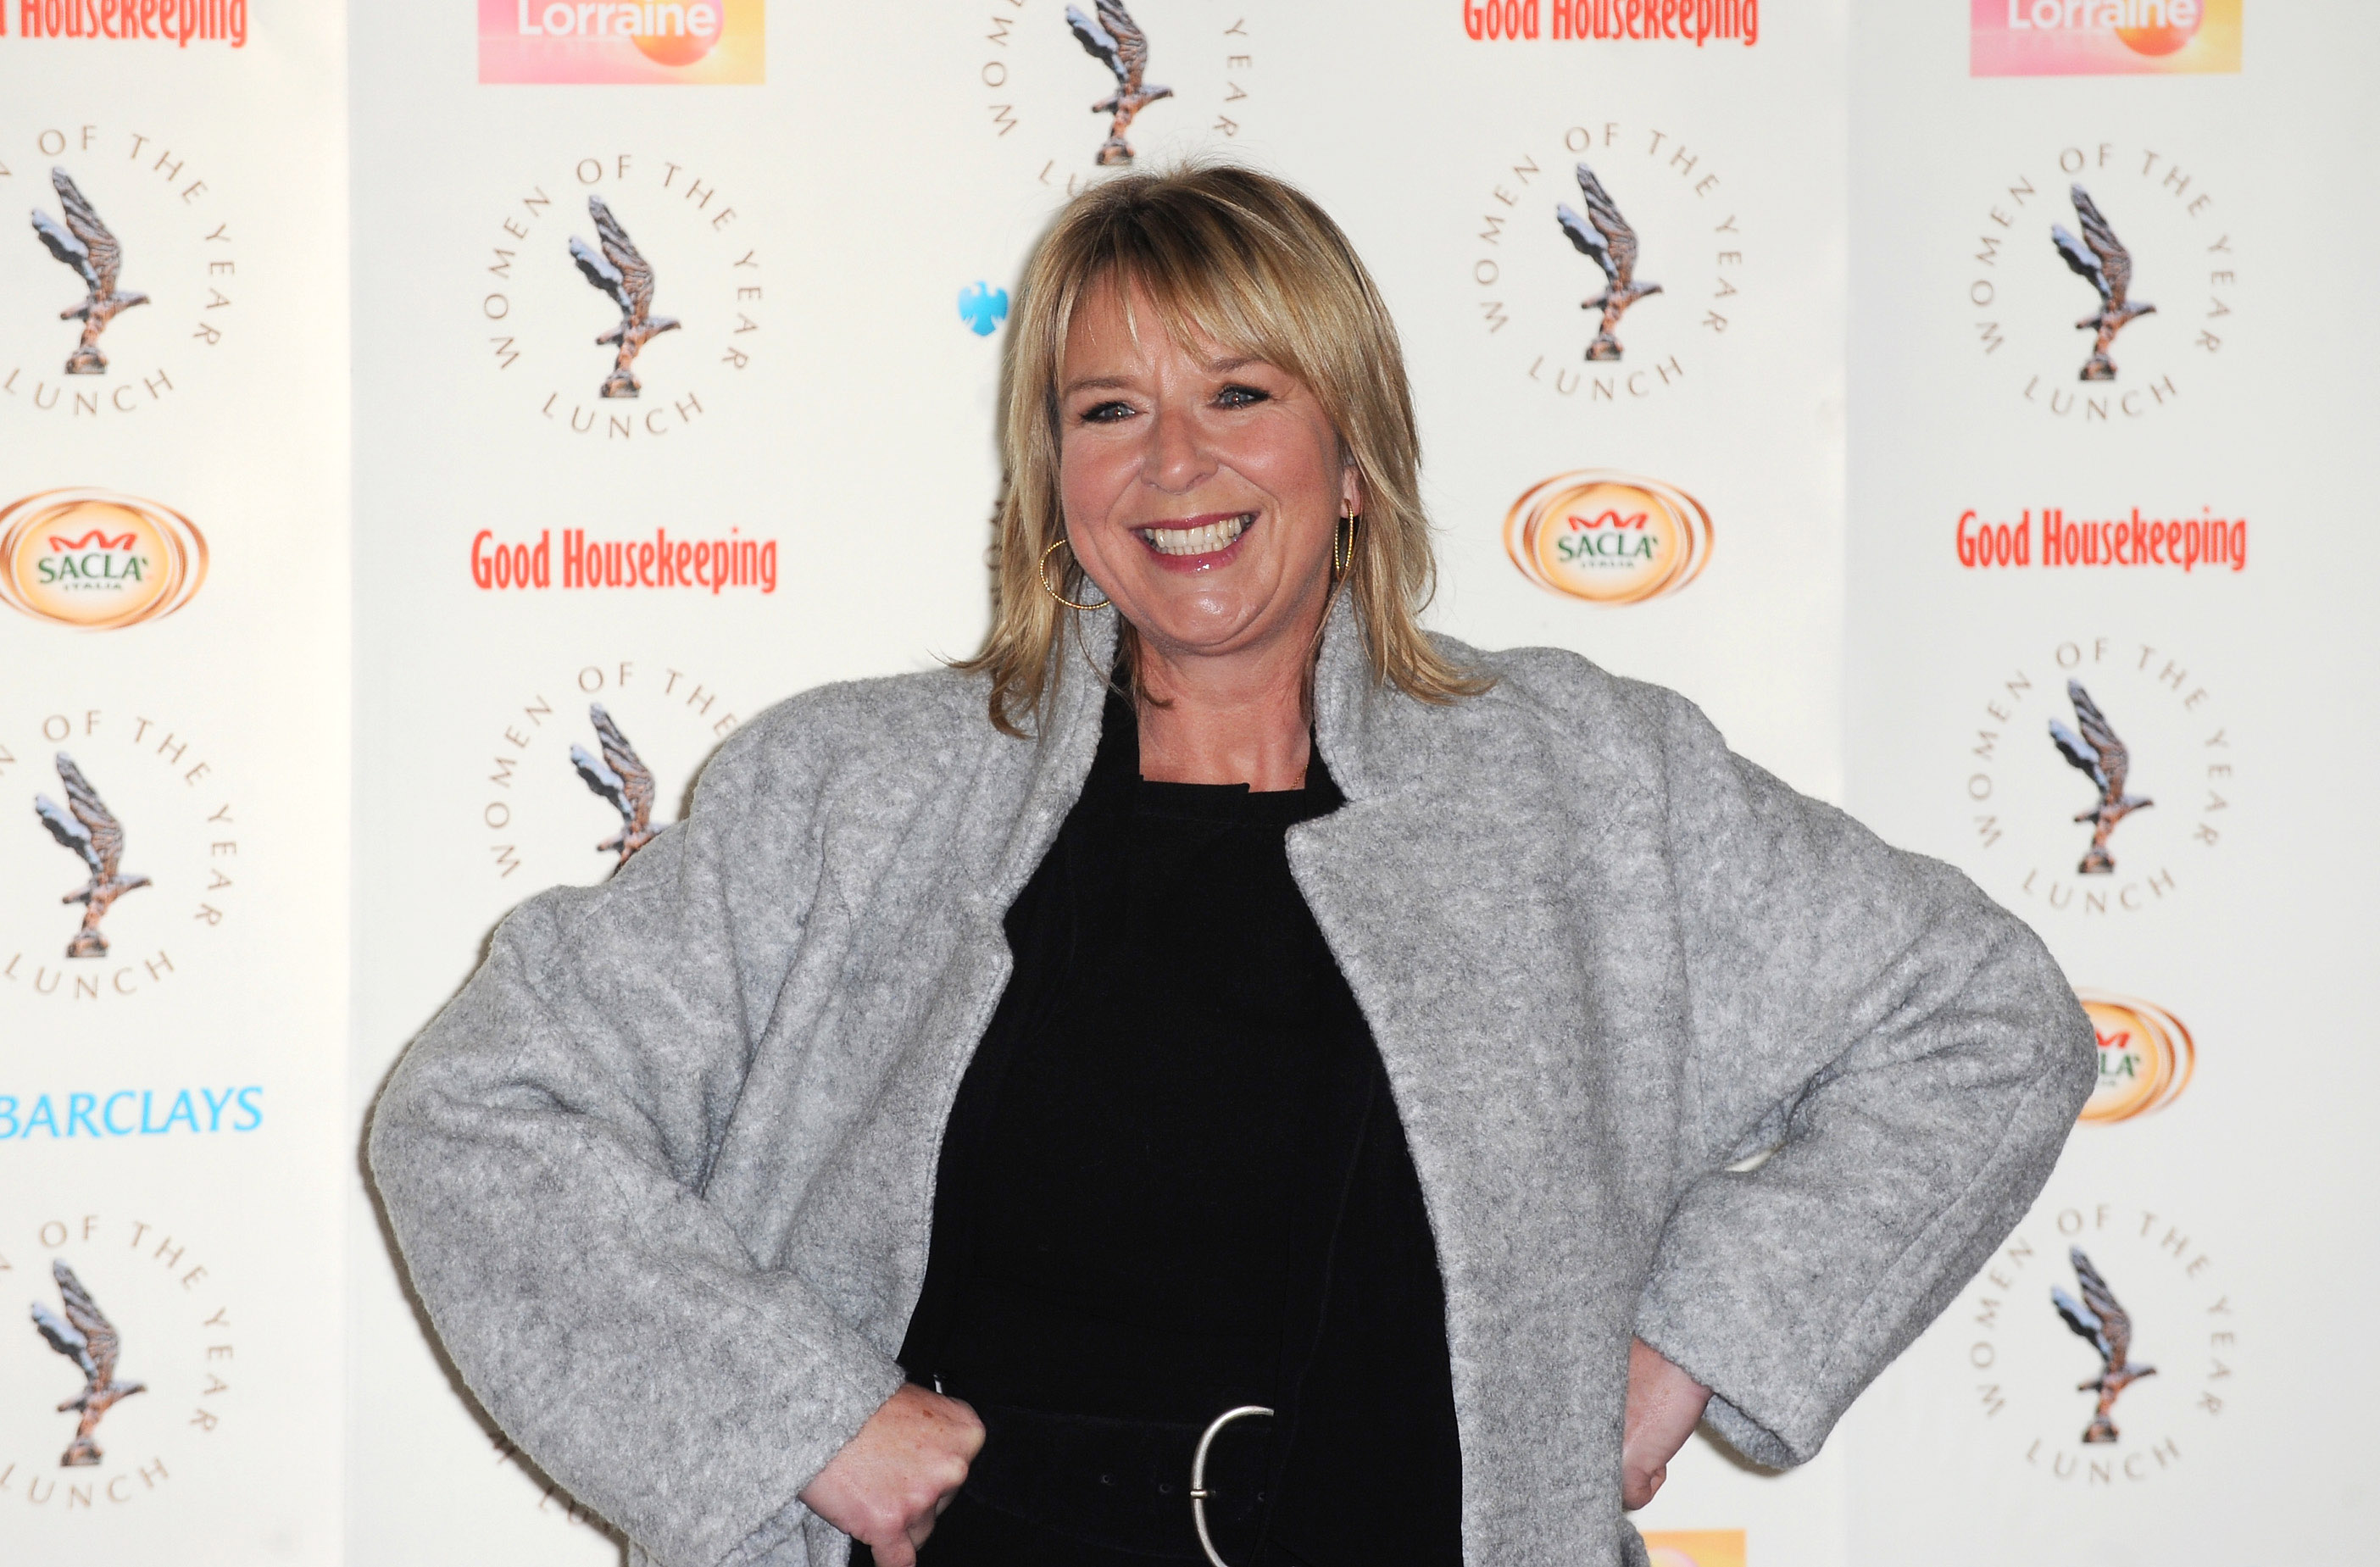 Fern Britton attends the Women of the Year lunch at Intercontinental Hotel on October 14, 2013 in London, England  (Photo by Ferdaus Shamim/WireImage)